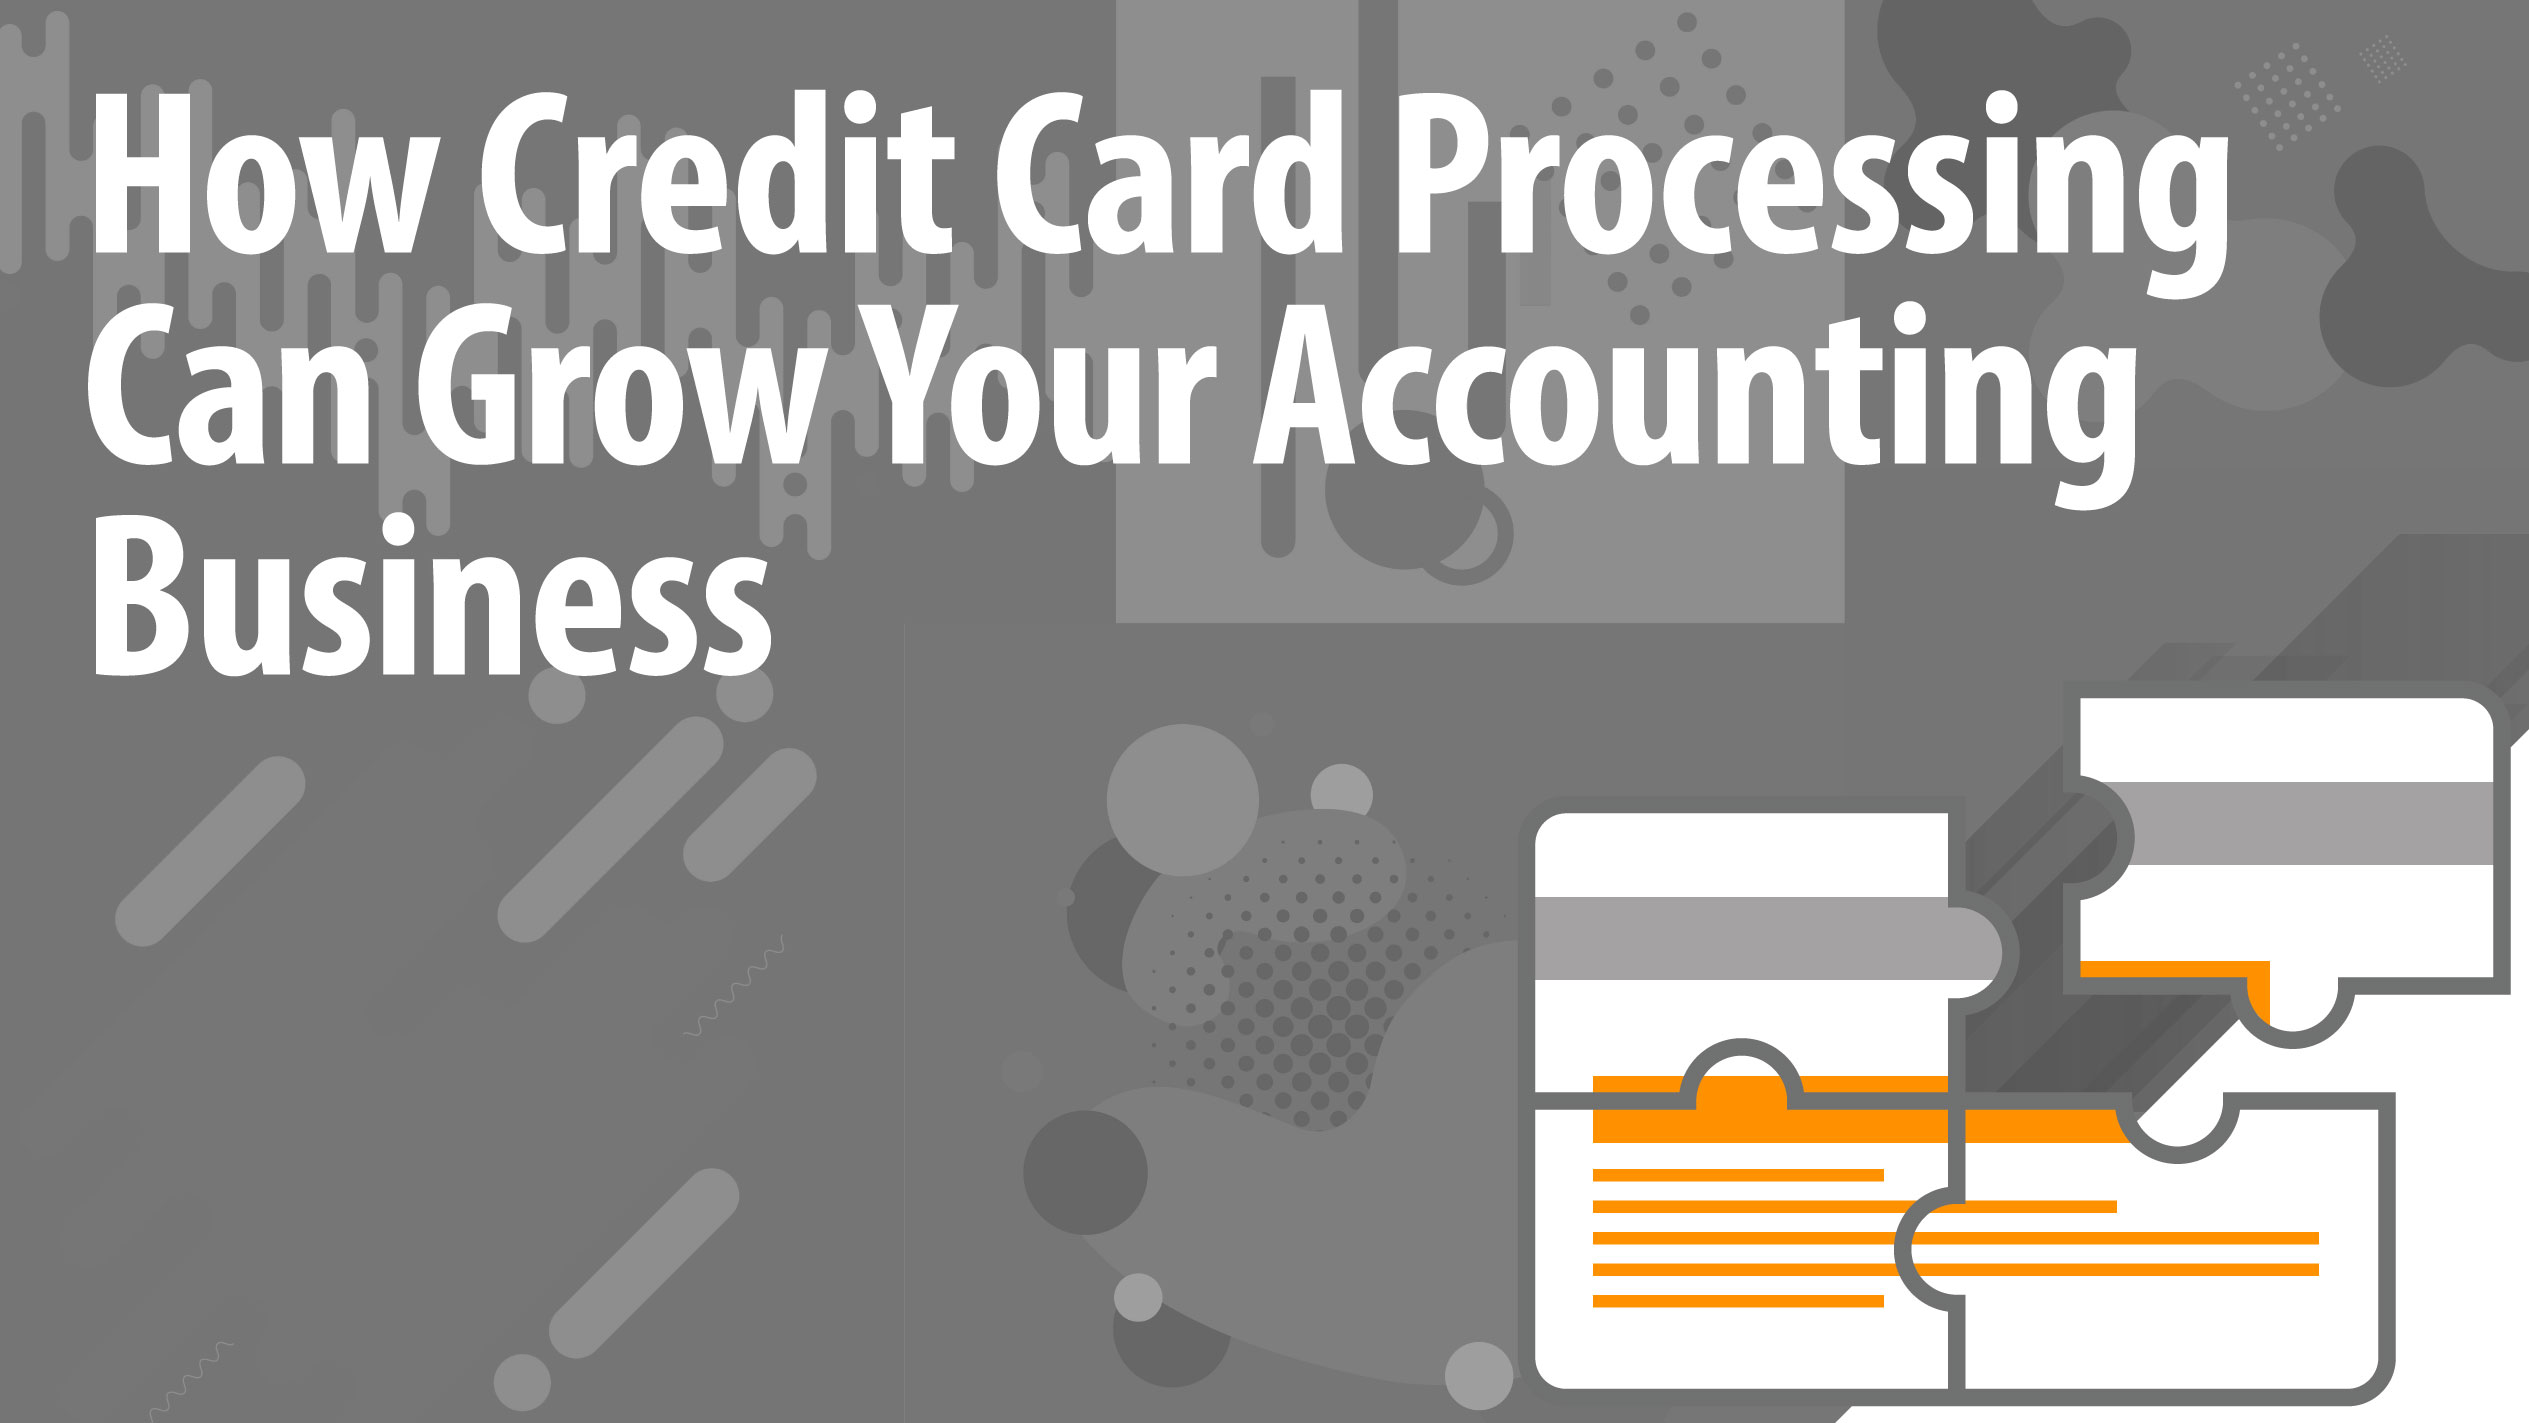 How Credit Card Processing Can Grow Your Accounting Business